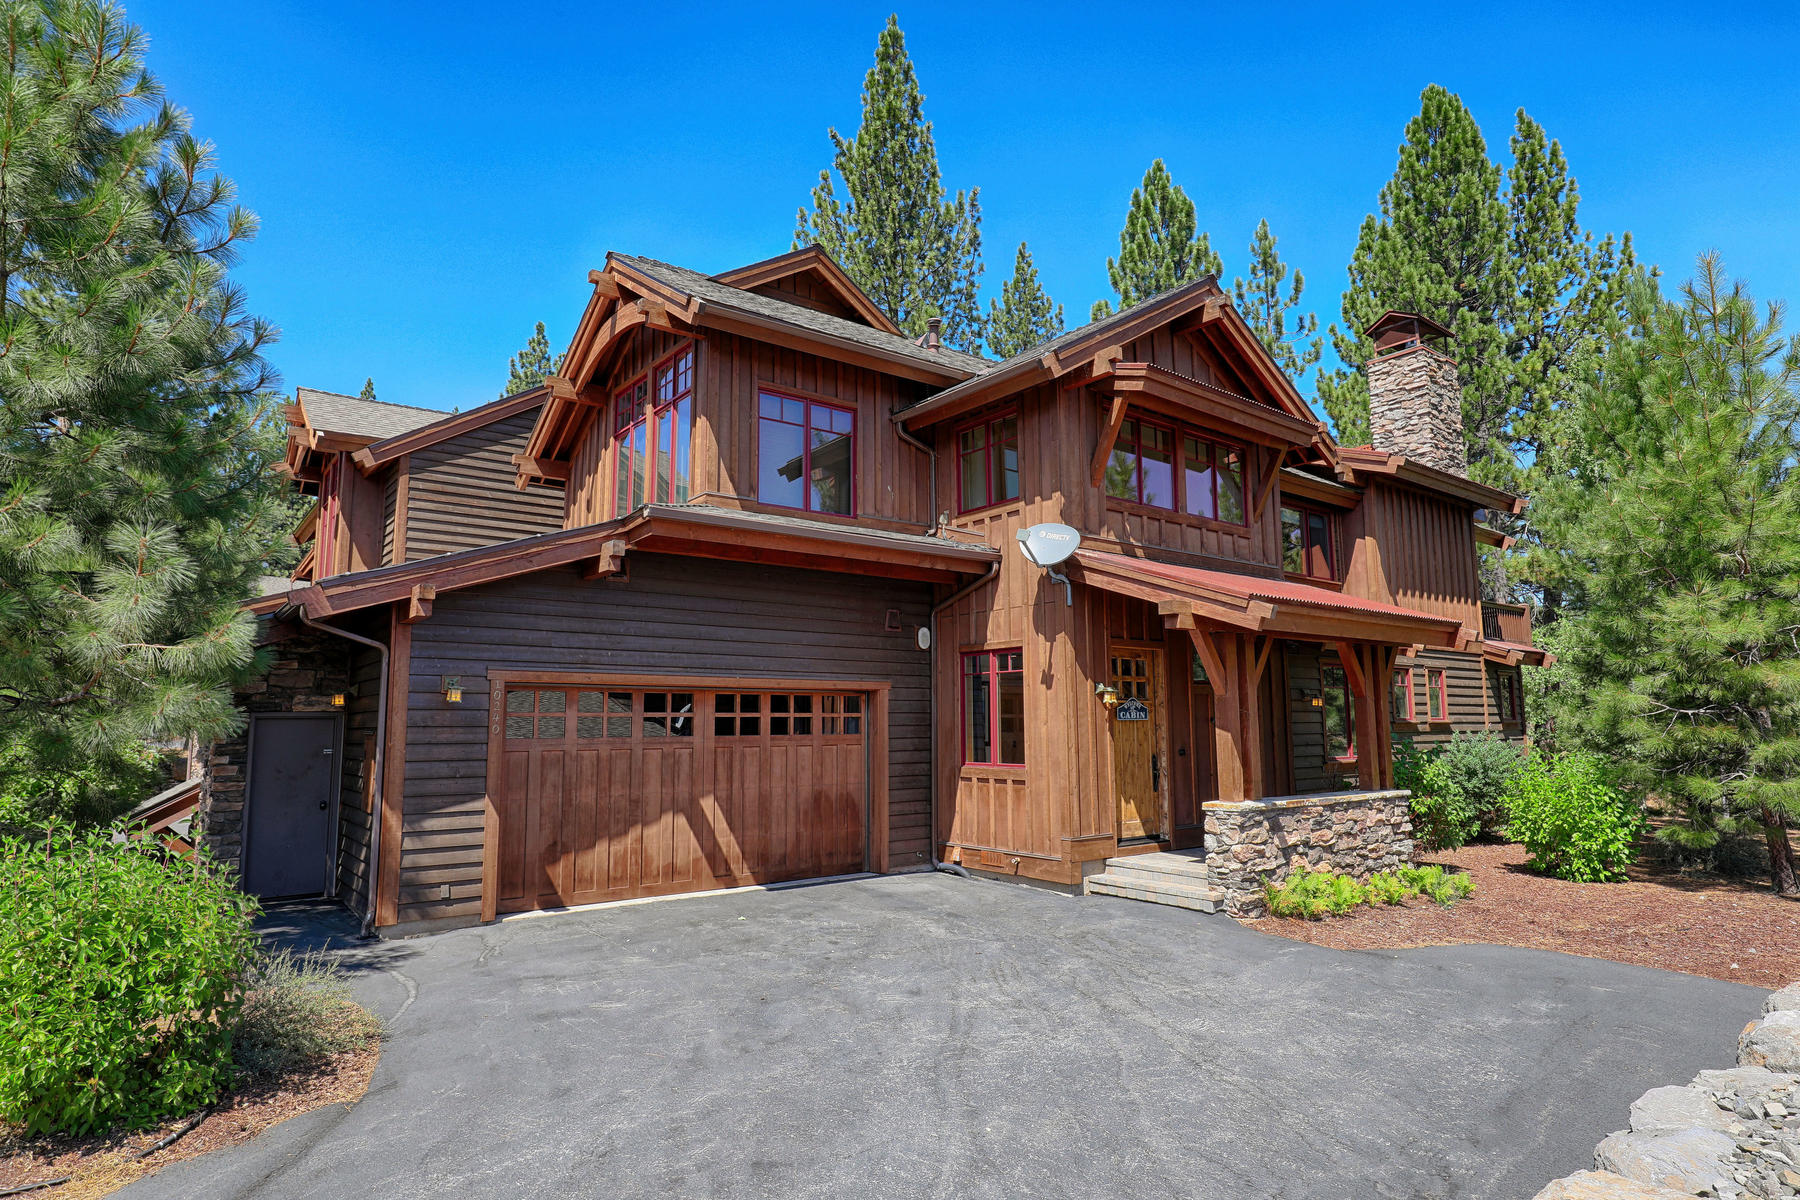 Property for Active at 10240 Valmont Trail, Truckee 10240 Valmont Trail Truckee, California 96161 United States